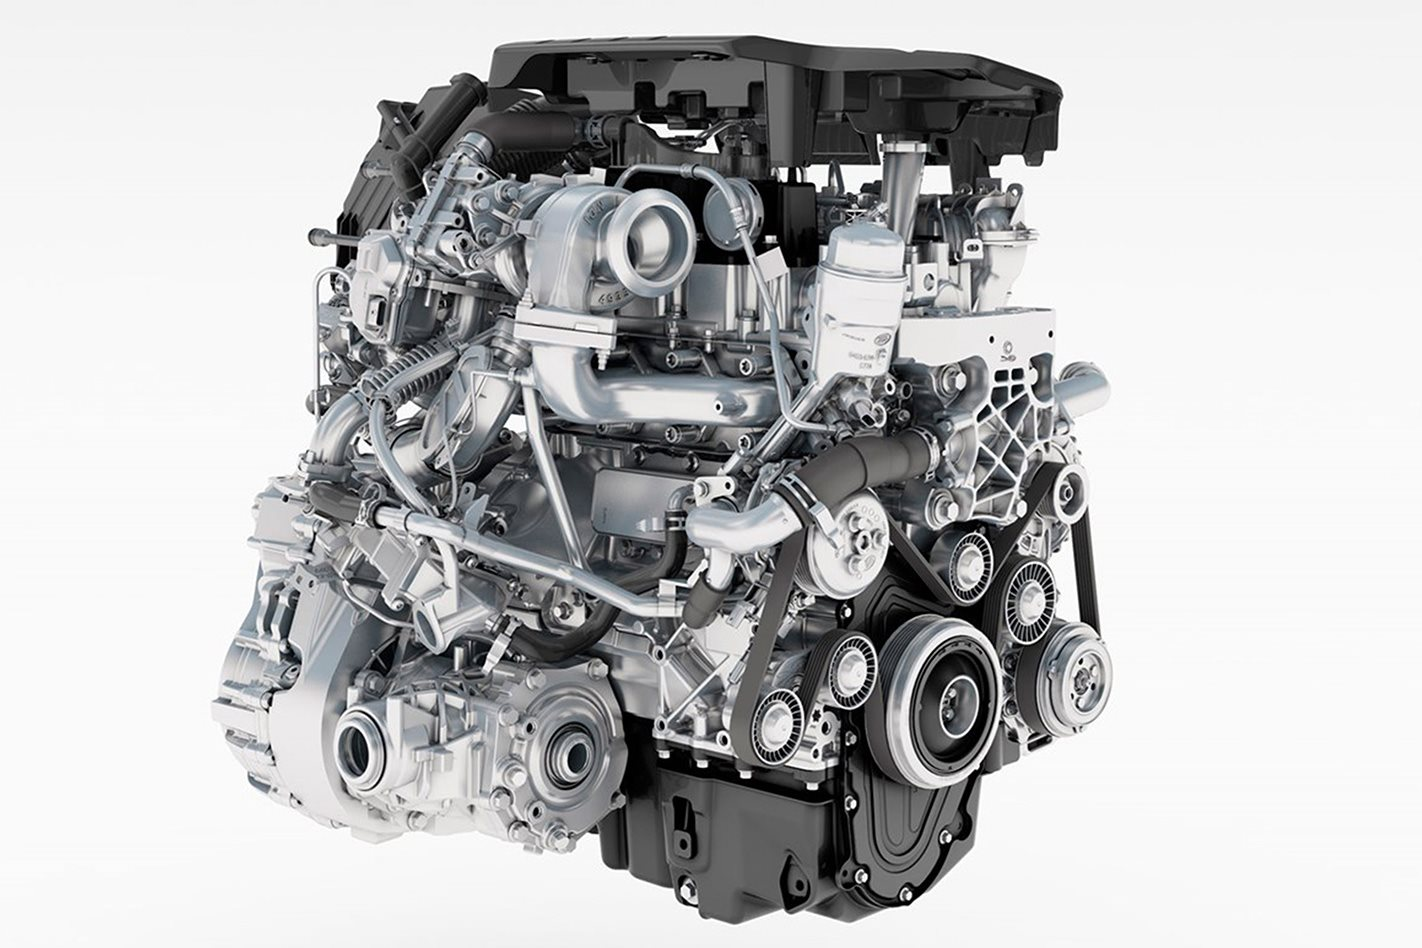 Smaller diesel engines are producing more power